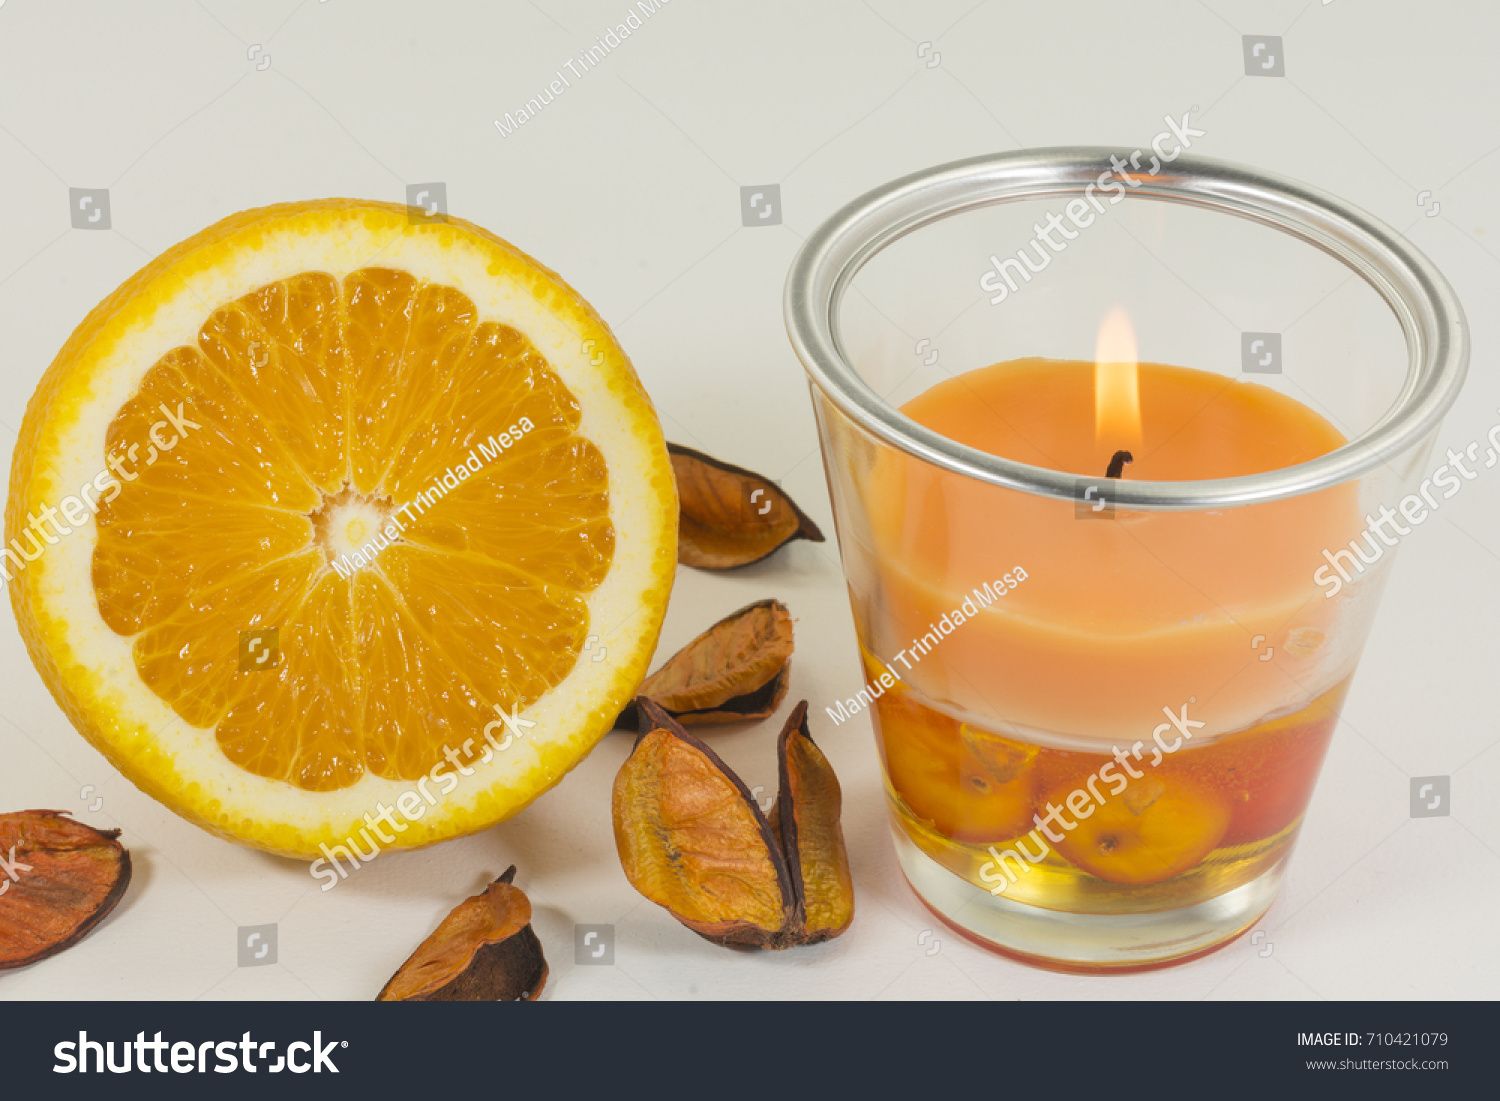 Aromatic candle for home with orange odor